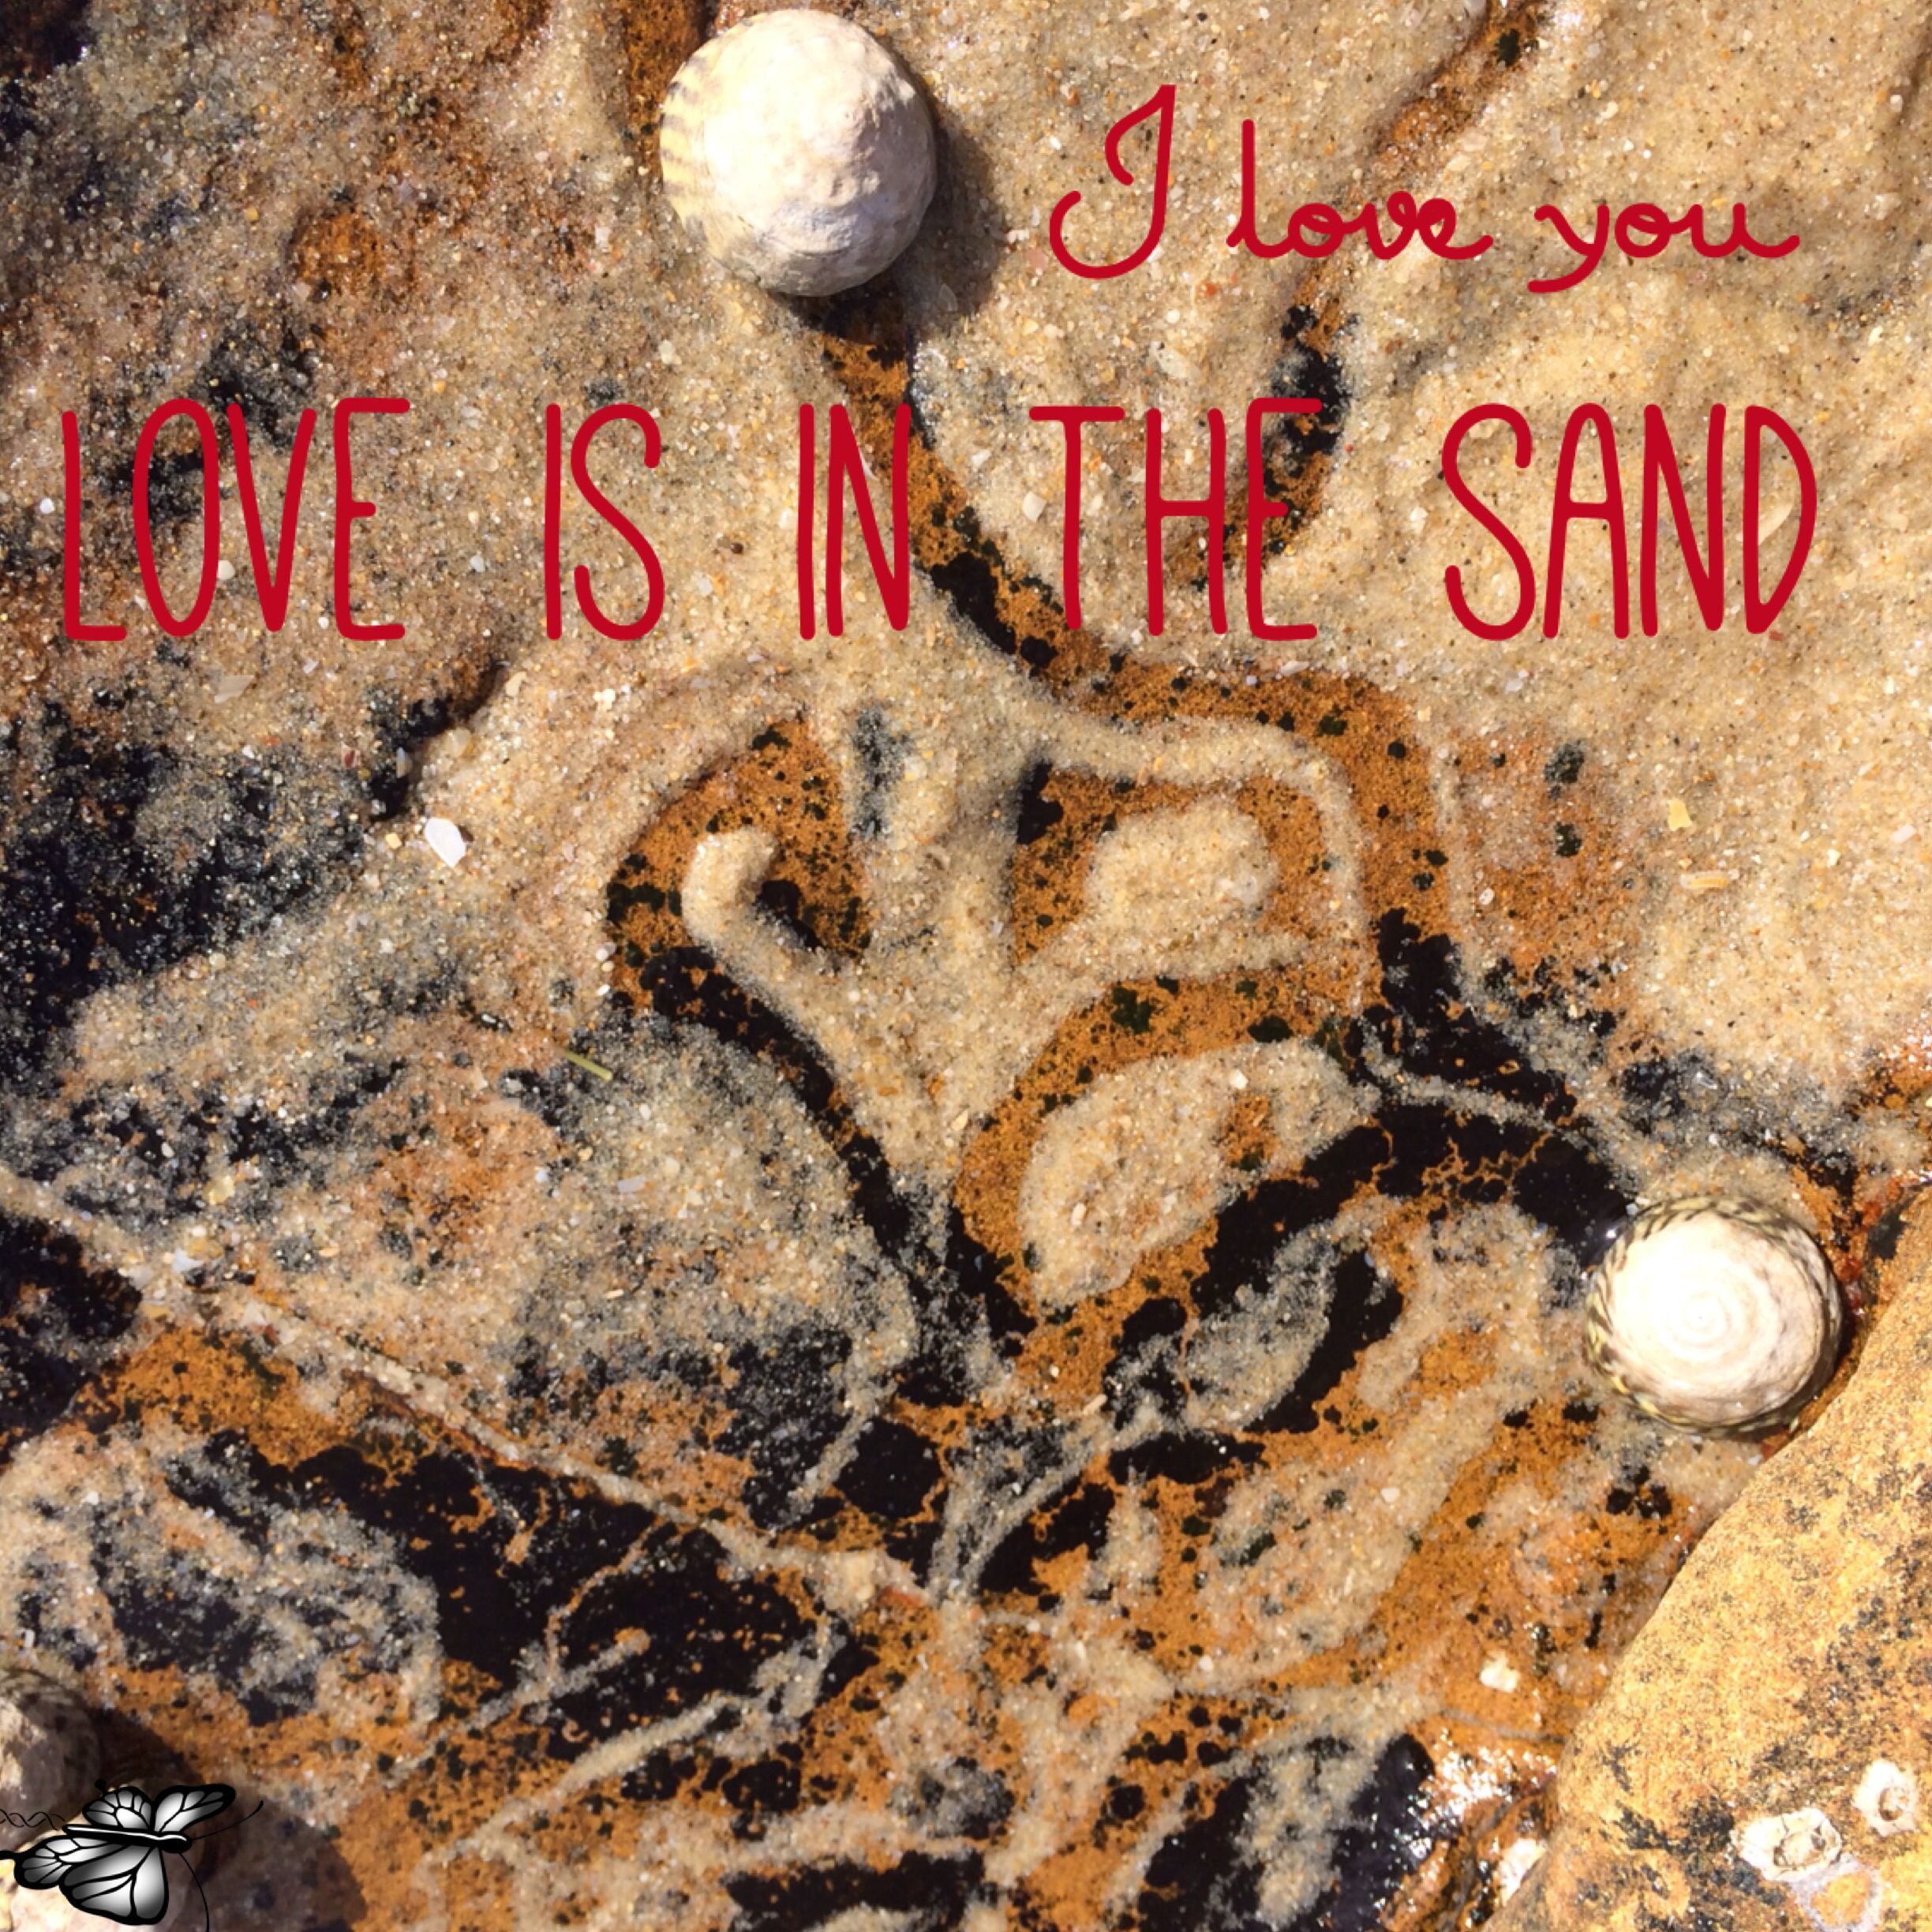 Love is in the sand.  Love is in the air  Love is everywhere if you feel it.   #getinsync #mikayla #butterfly  Follow me for #inspirationalquotes #motivate #affirmations #success #positive #takeaction #believe.  Intention is everything and there is some awesomeness in all of us. Be awesome.